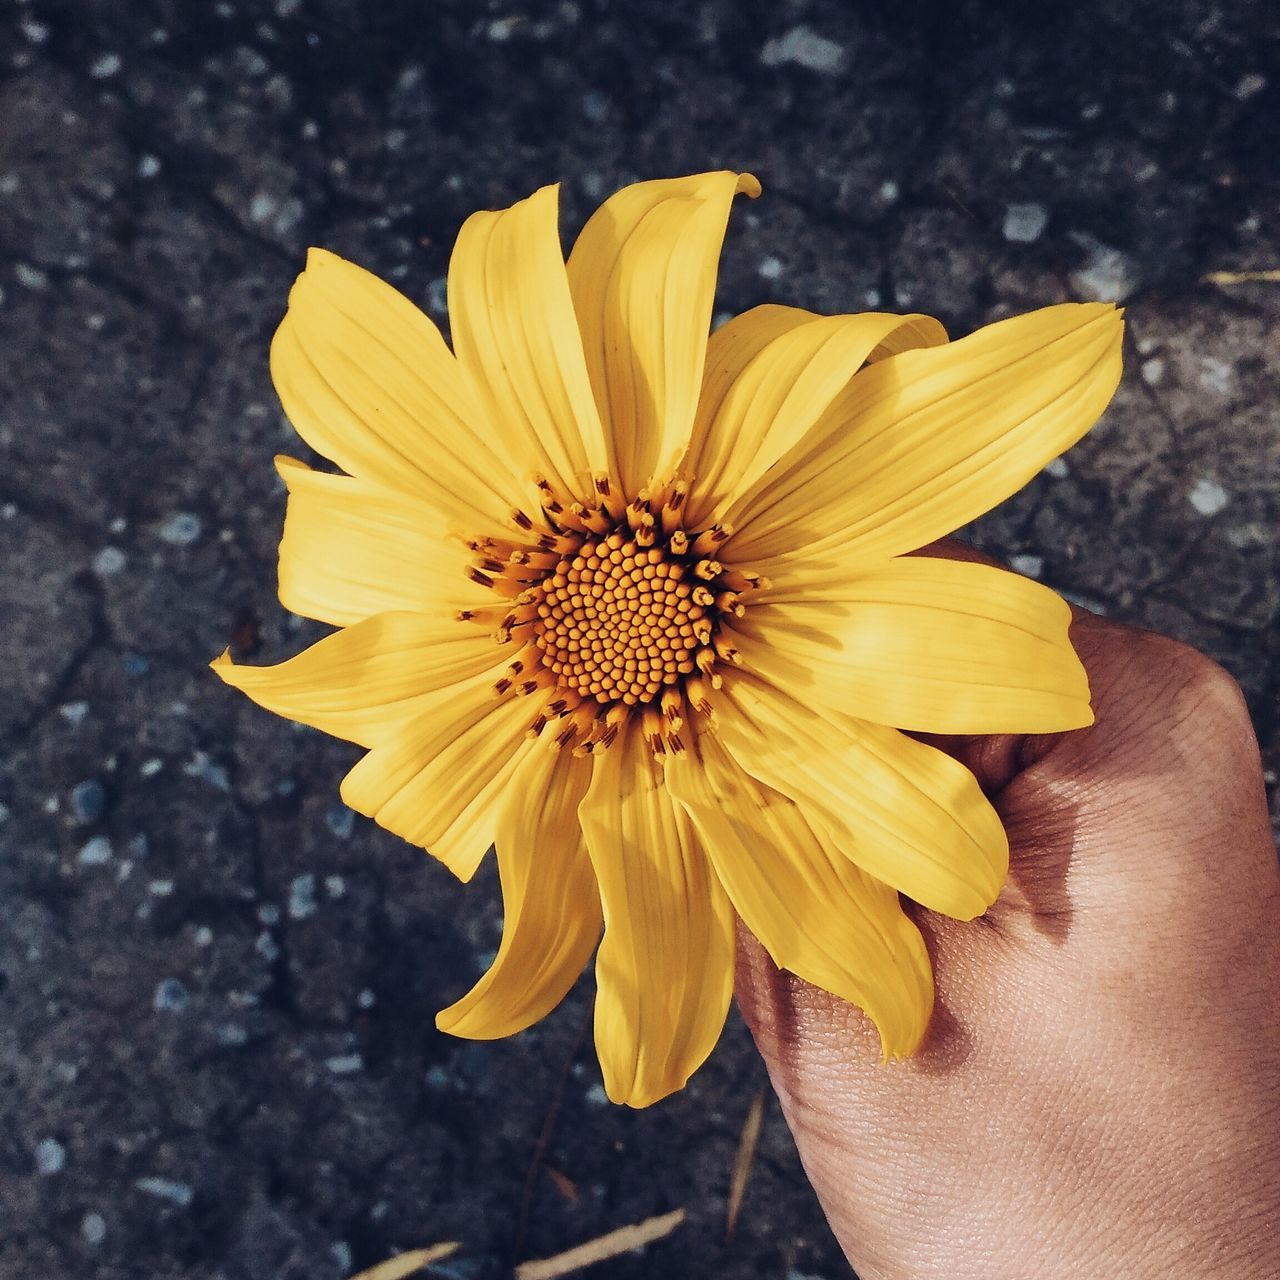 flower, petal, yellow, flower head, fragility, freshness, pollen, beauty in nature, nature, outdoors, day, growth, close-up, one person, sunflower, real people, blooming, human body part, gazania, plant, human hand